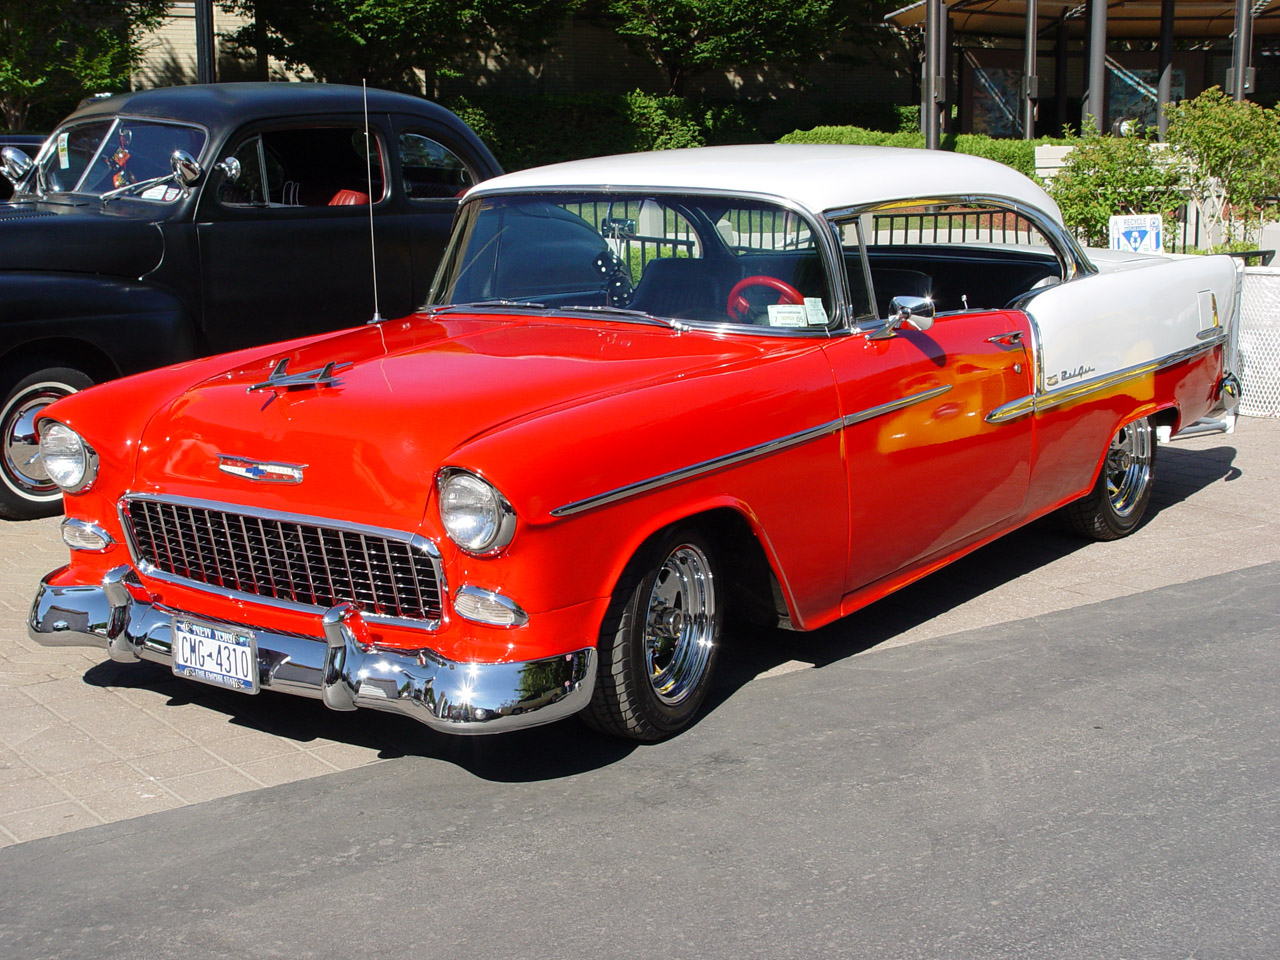 Chevrolet bel air specs photos videos and more on for Garage renault bouc bel air